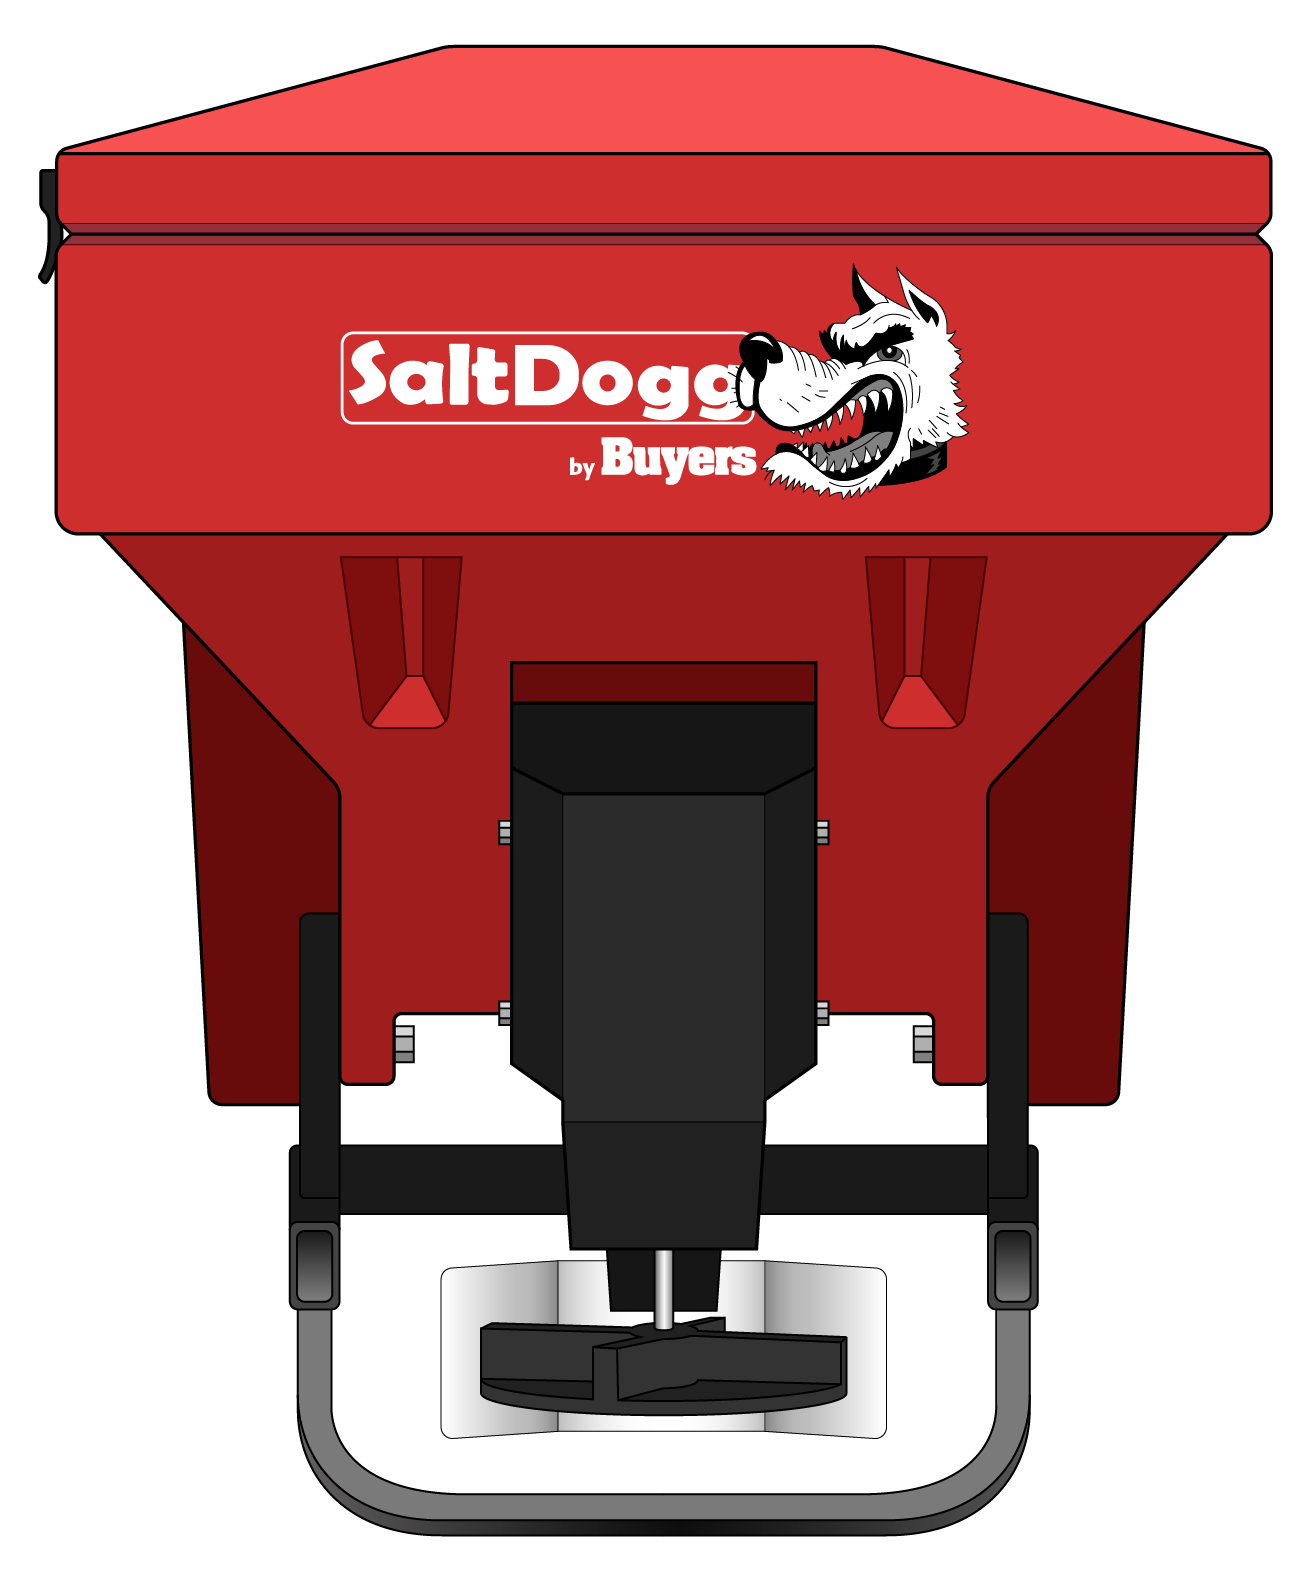 TGS03RED-S.A.M. SaltDogg TGS03 8.0 Cubic Foot Red Polymer Electric Tailgate Spreader